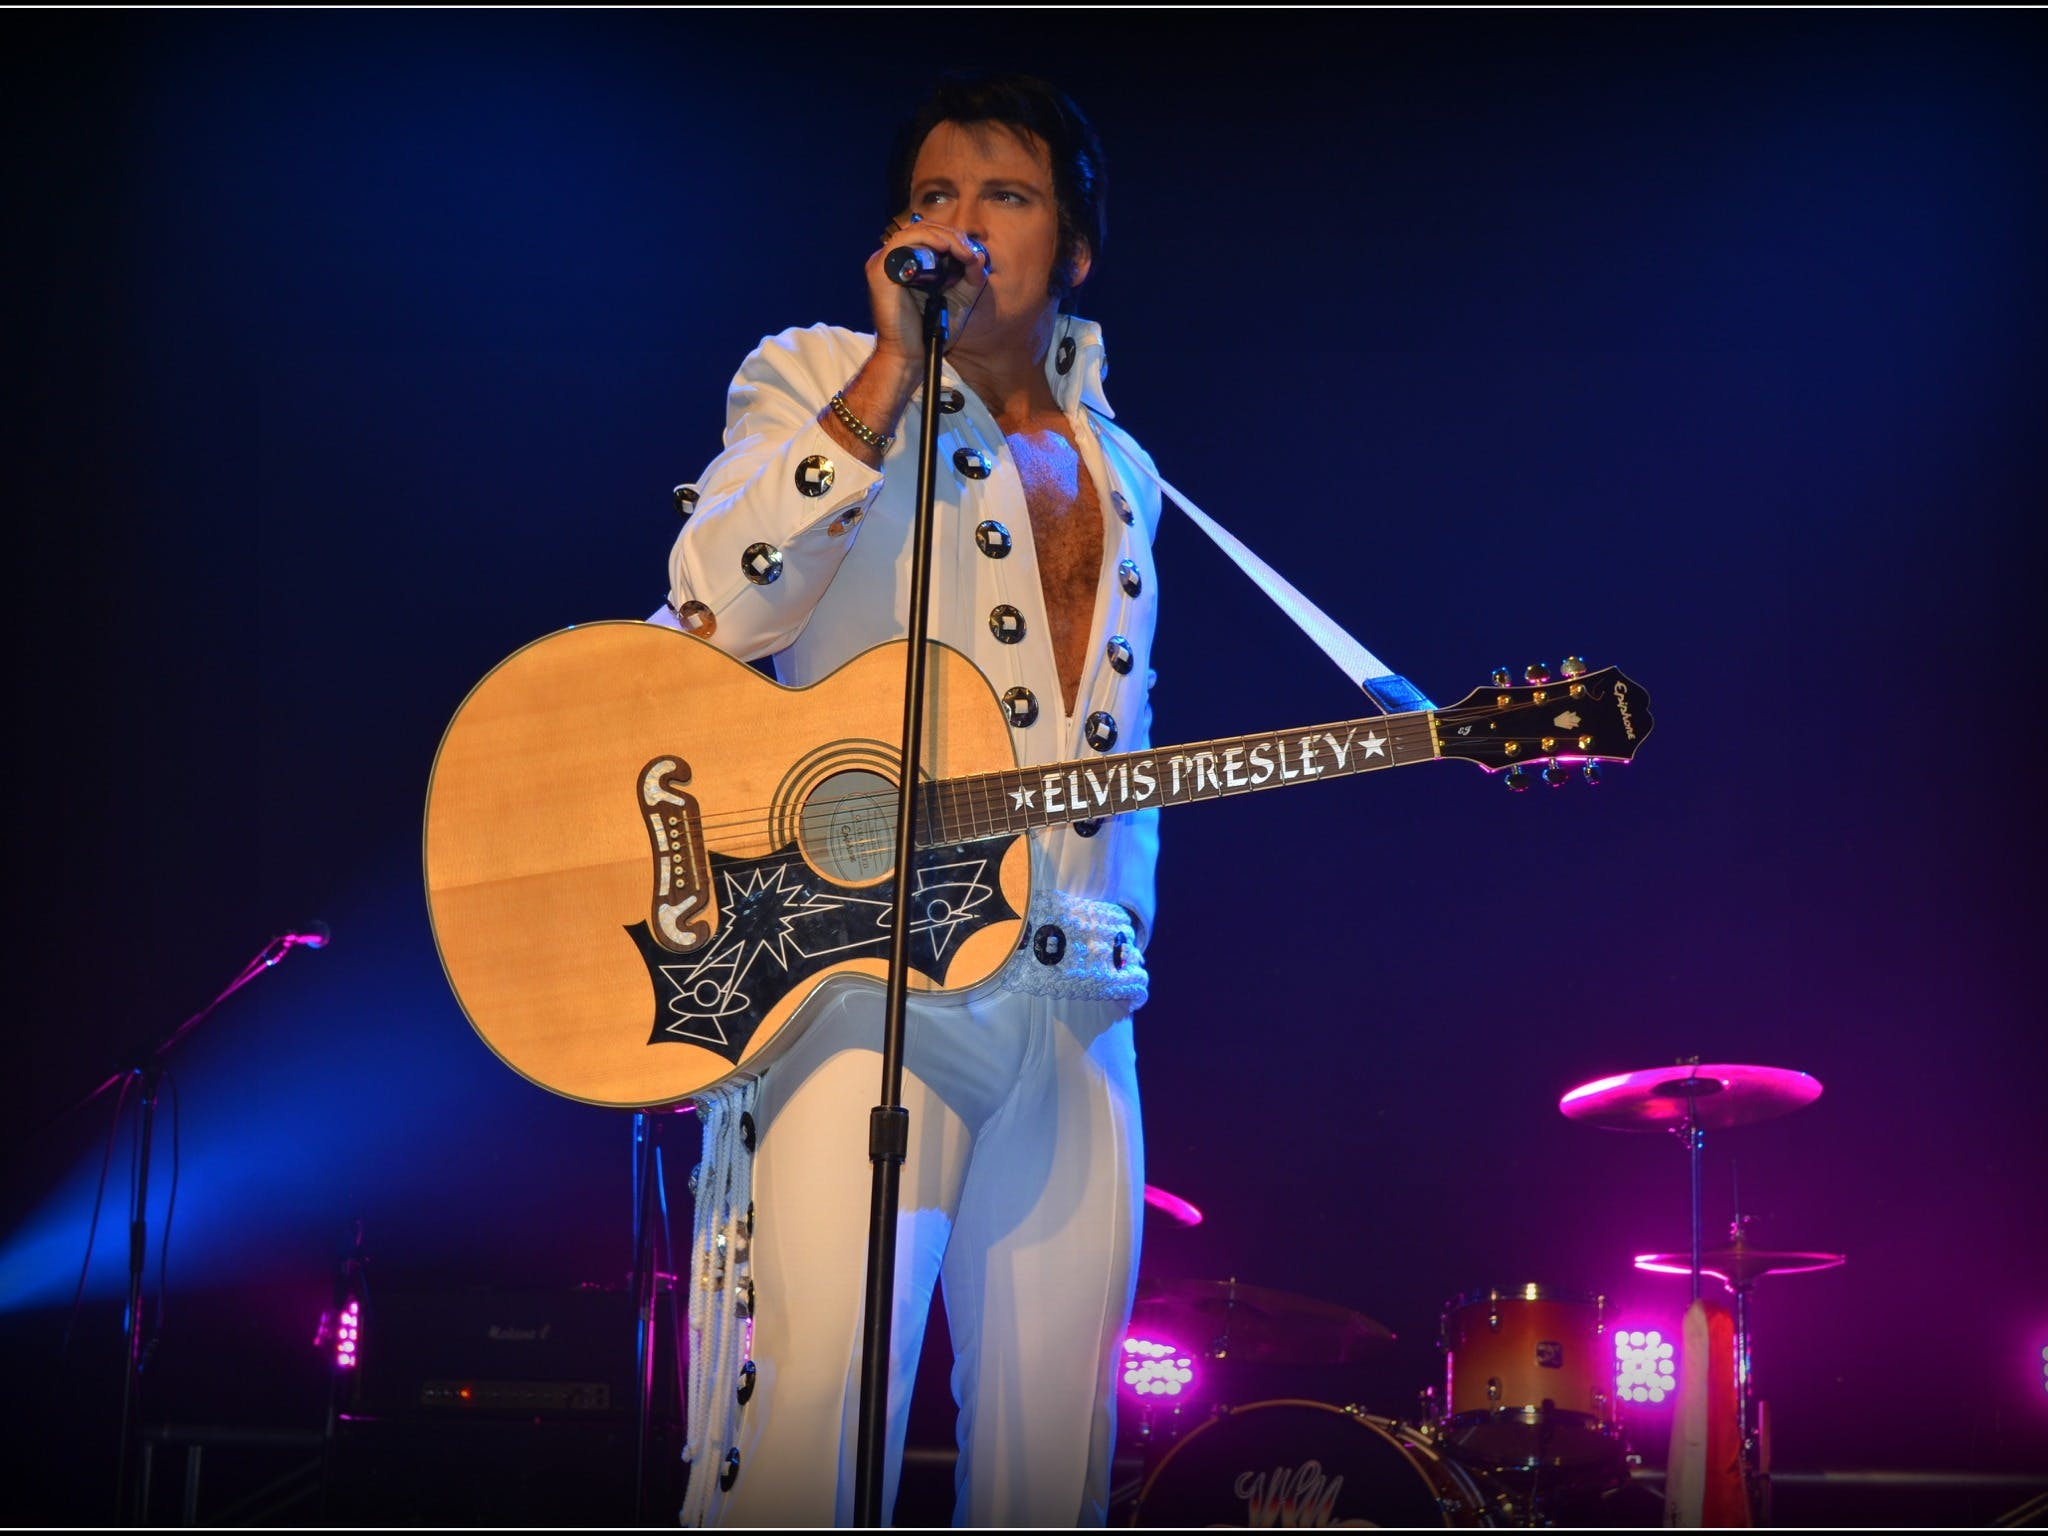 Elvis Forever - Damian Mullin 'Up Close and Personal' - Whitsundays Tourism